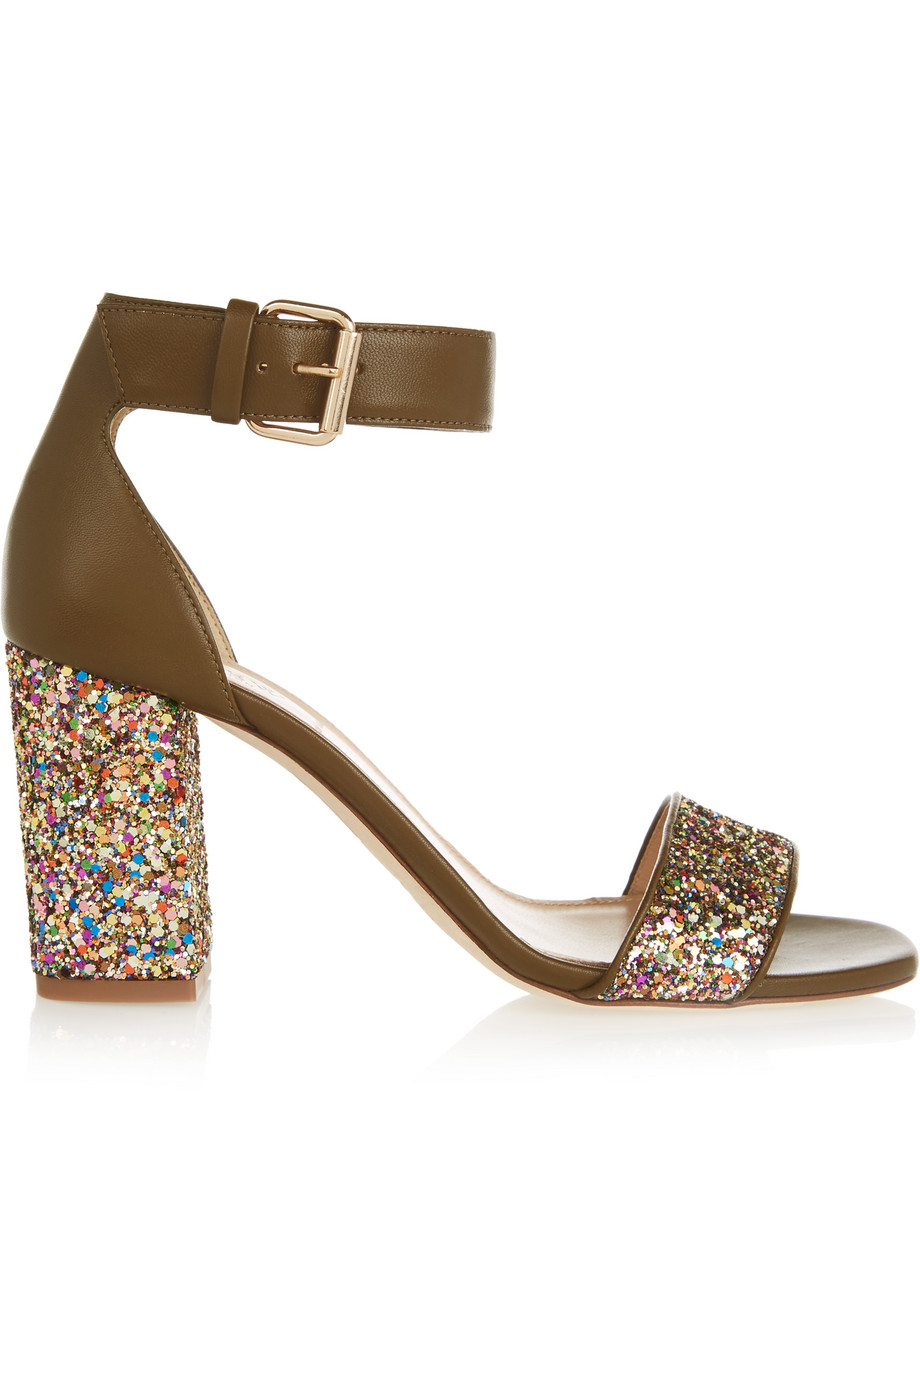 J.Crew Collection Glittered Leather Sandals, Green/Metallic, Women's, Size: 11